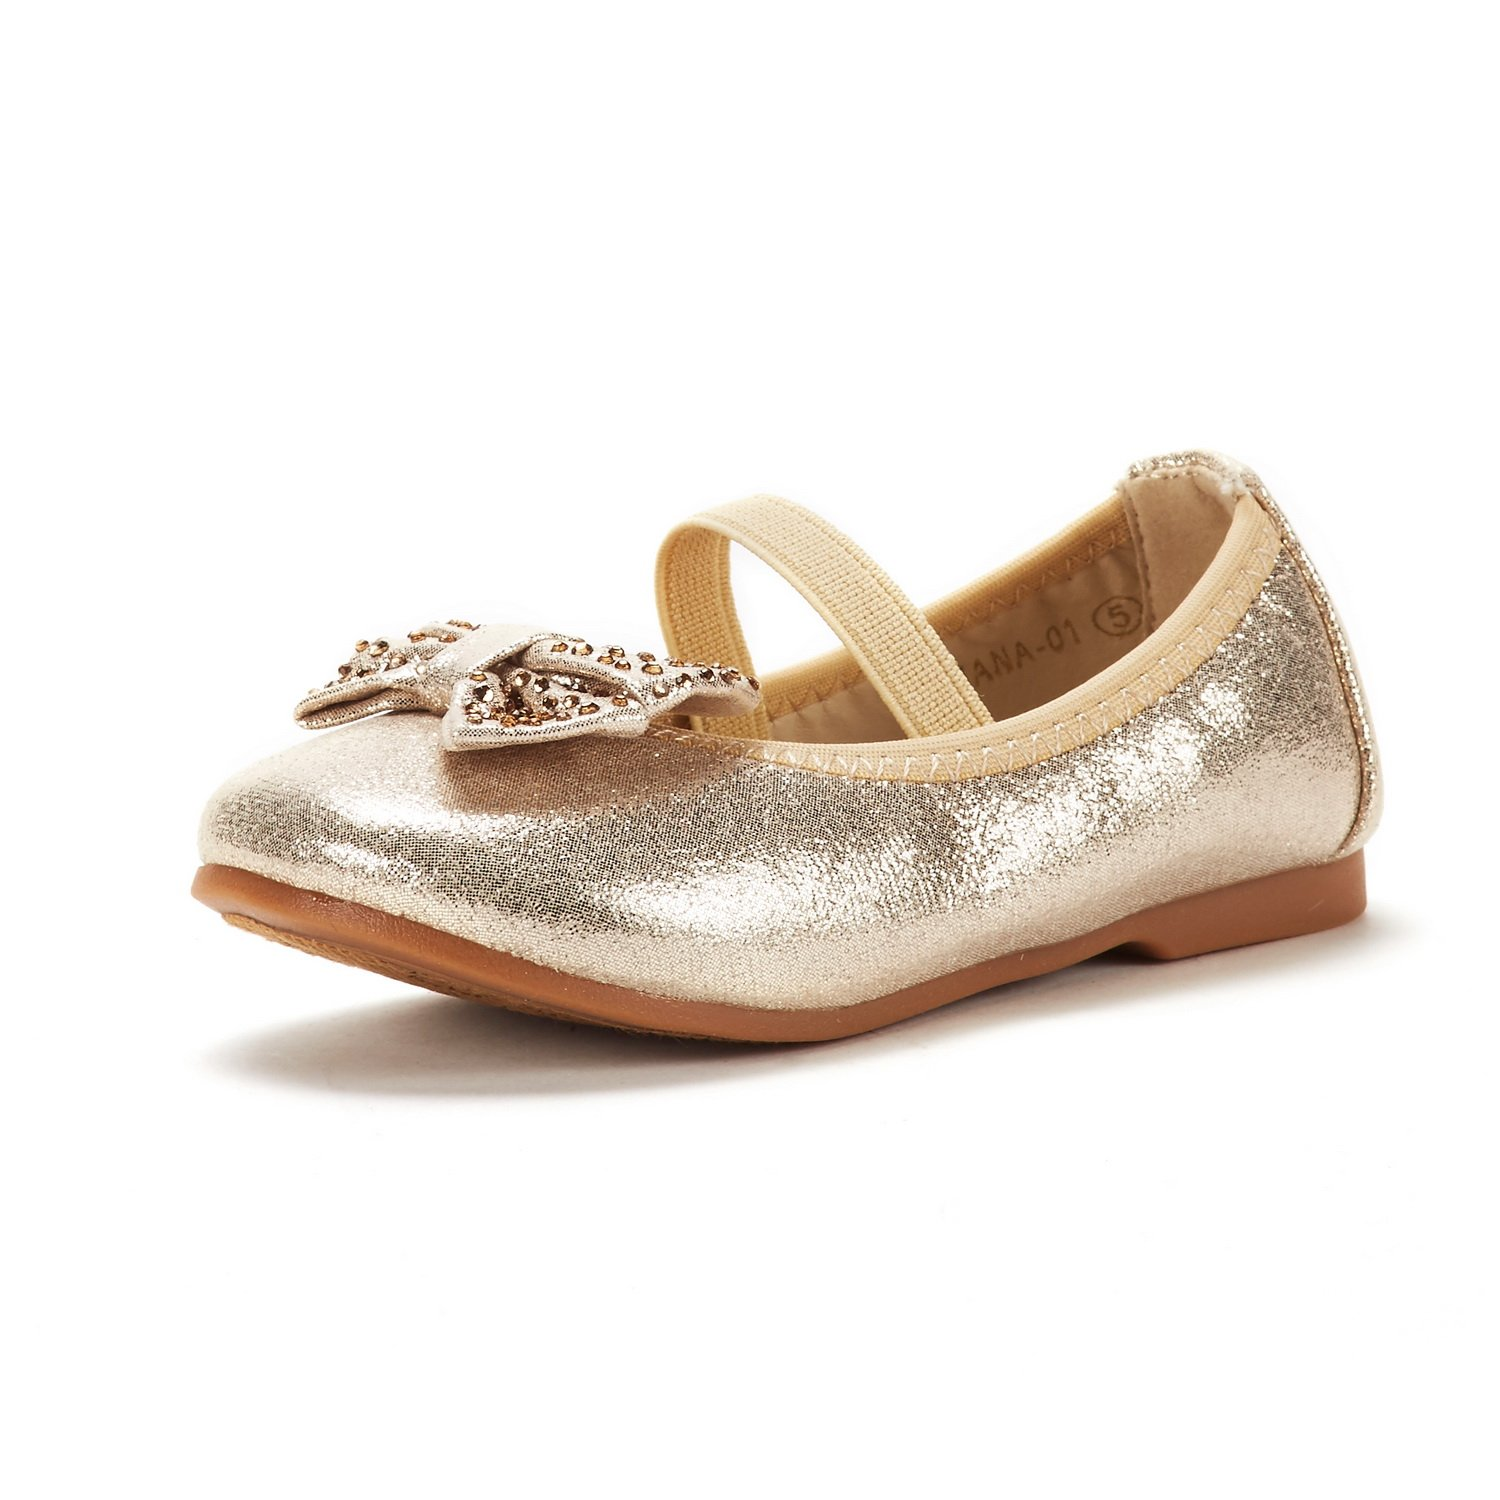 DREAM PAIRS Toddler Tiana_01 Gold Girl's Mary Jane Ballerina Flat Shoes Size 6 M US Toddler